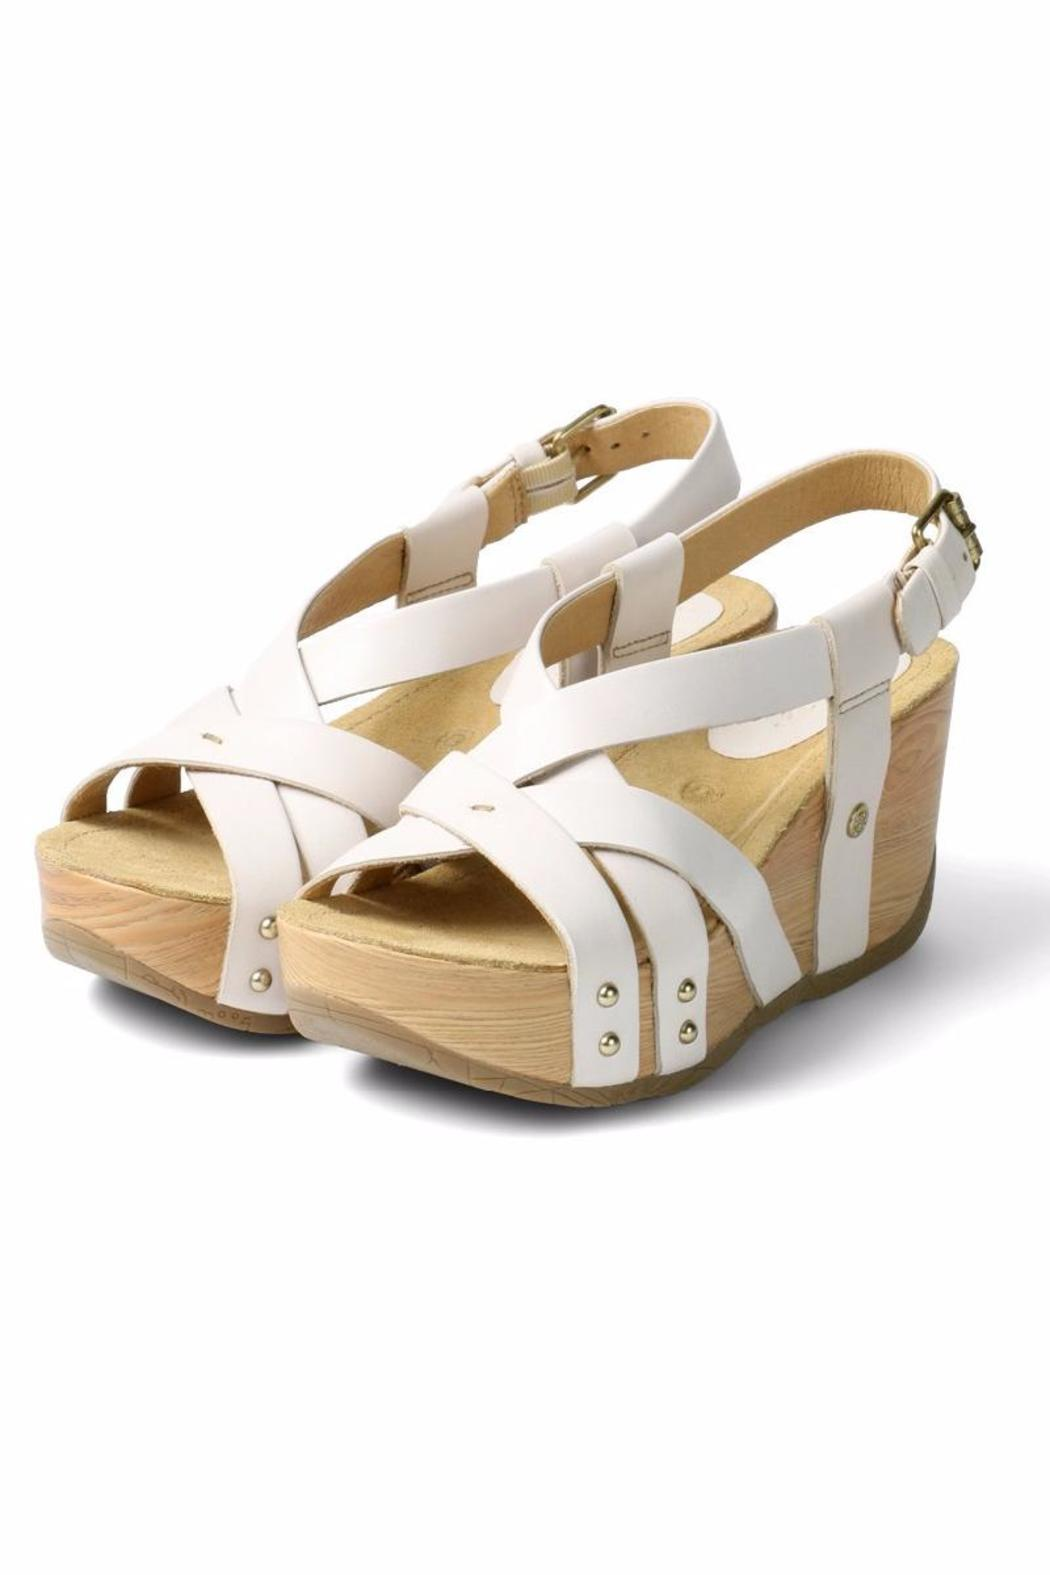 0f0c0803c42 Bussola Wedge Sandal from Canada by Modern Sole — Shoptiques